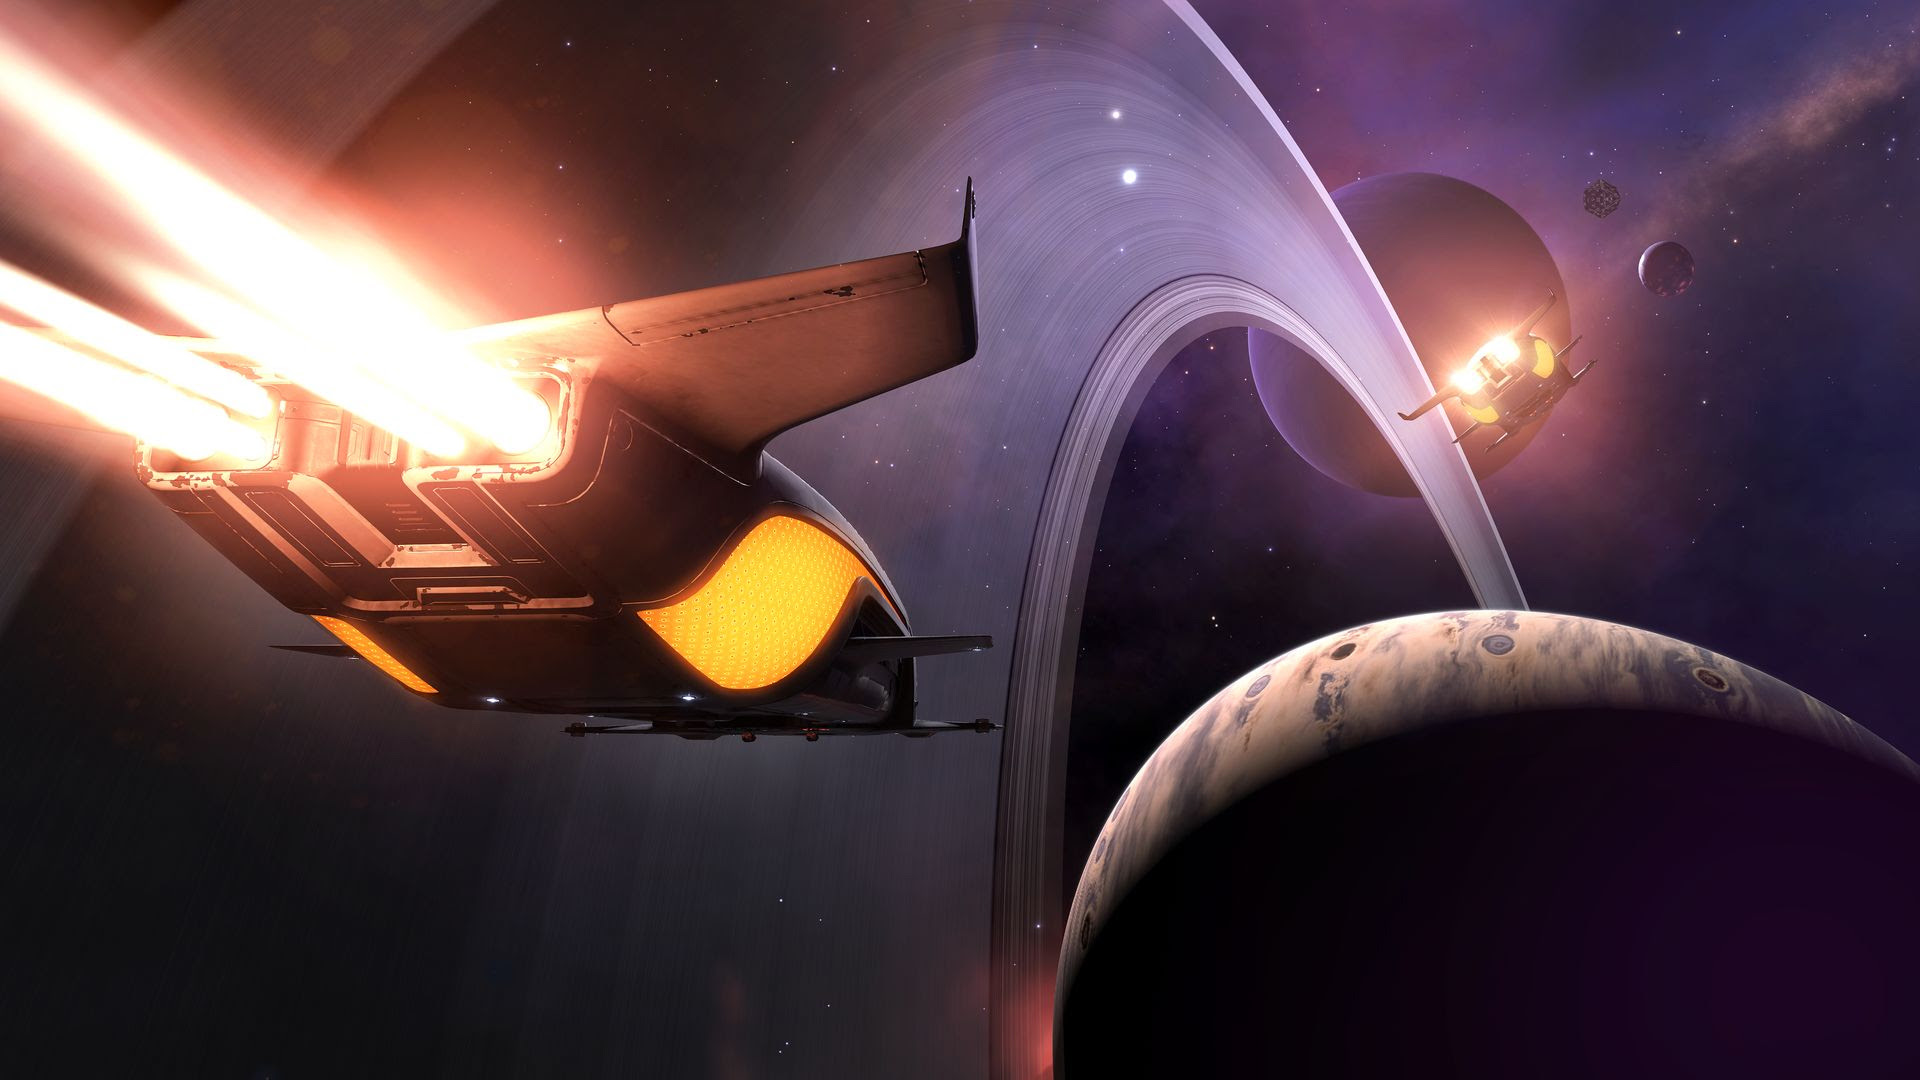 Elite: Dangerous is coming to PS4 alongside a retail release in June screenshot